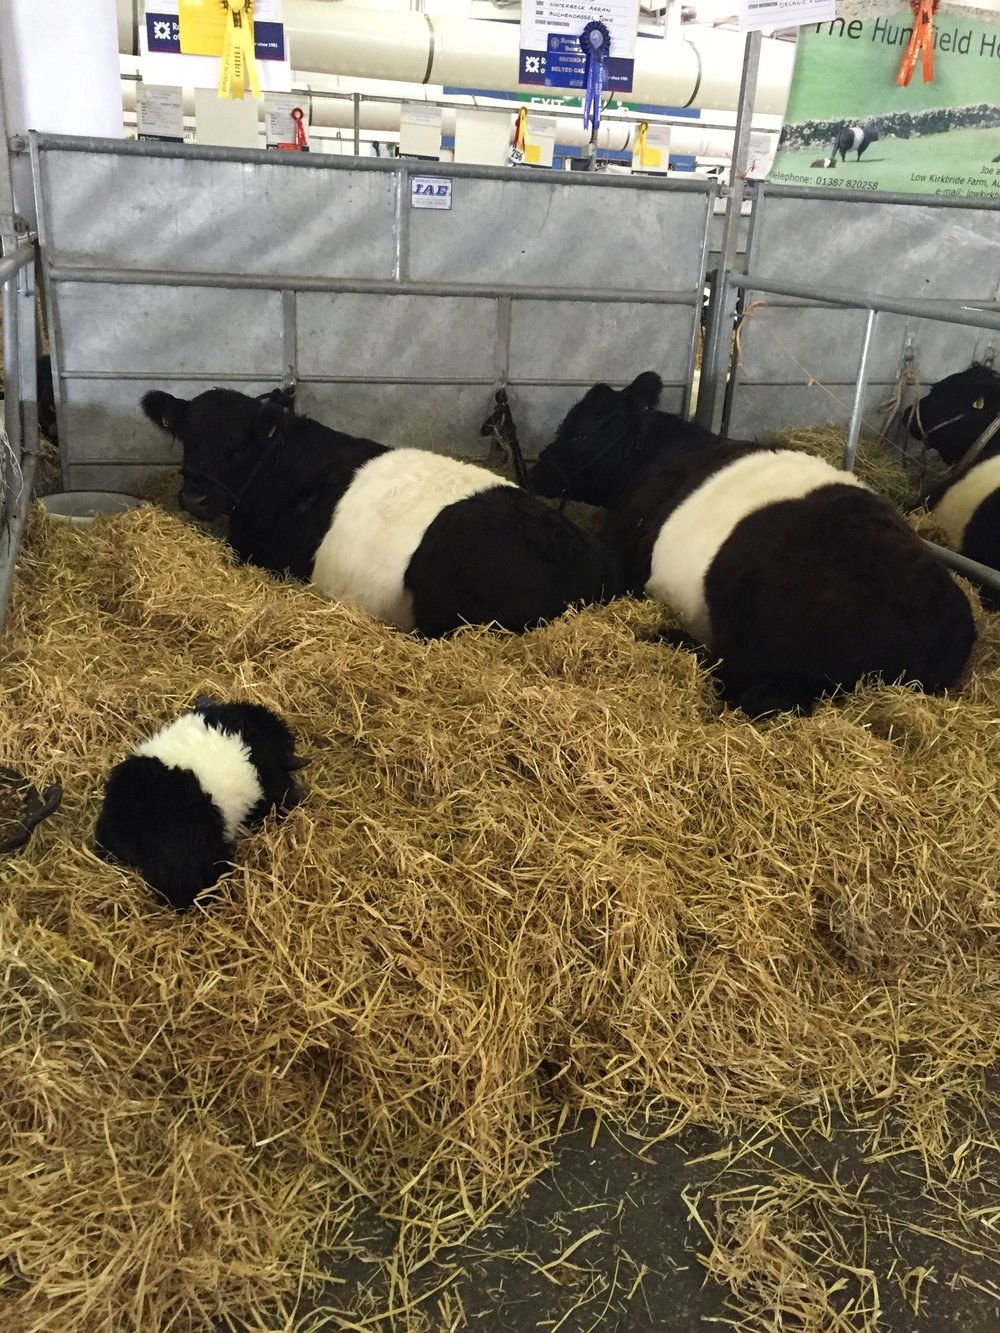 The naturally polled Belted Galloway with a pygmy FF Belty